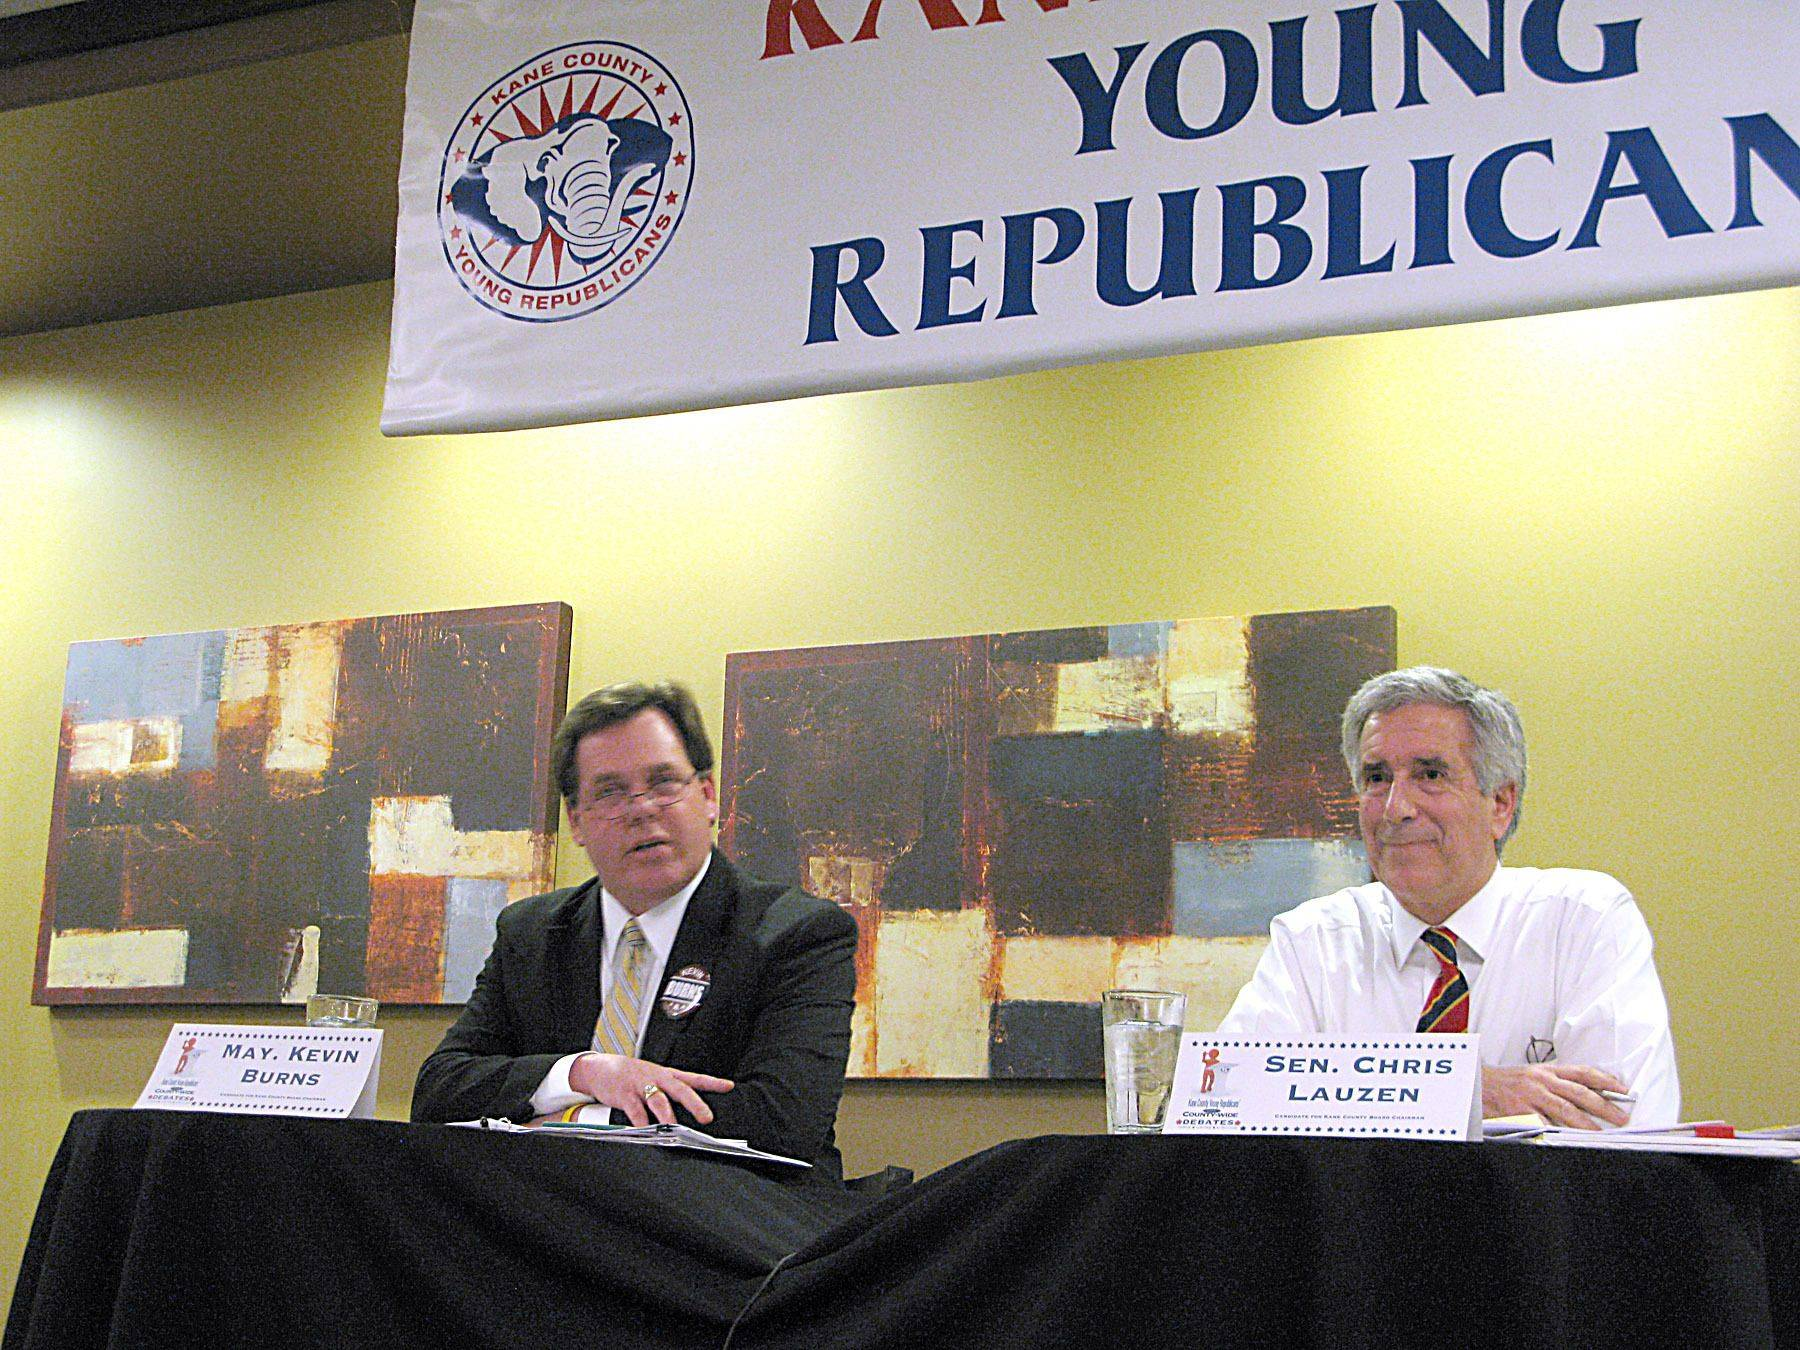 JIM FULLER/jfuller@dailyherald.com Geneva Mayor Kevin Burns, left, and state Sen. Chris Lauzen drew a hard line on what type of Republican each of them is Wednesday night in a debate at the Urban Grille in Geneva.